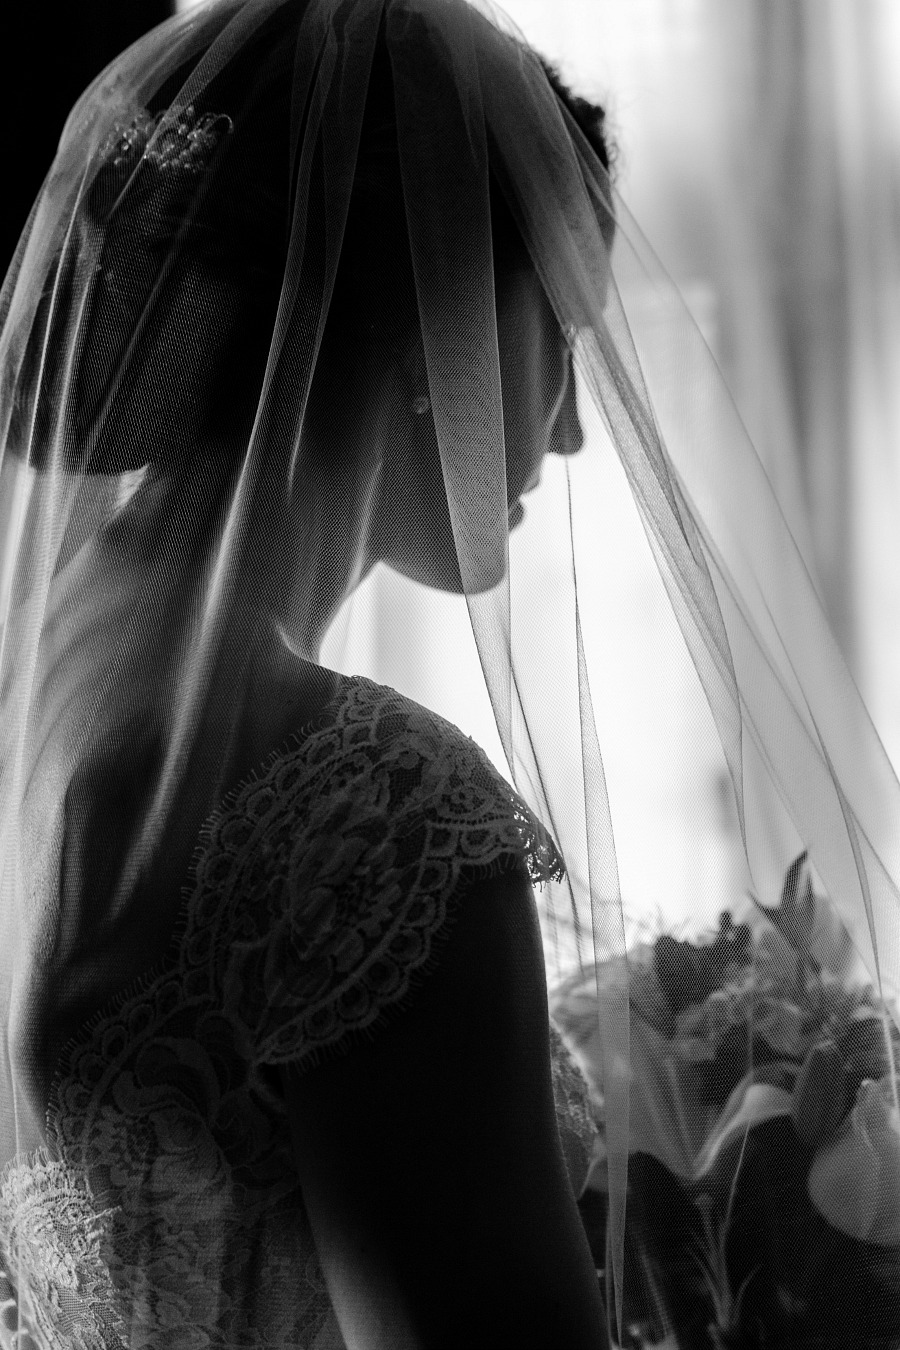 Black & White Bridal Portraits at Hermitage Museum & Gardens Norfolk, Virginia